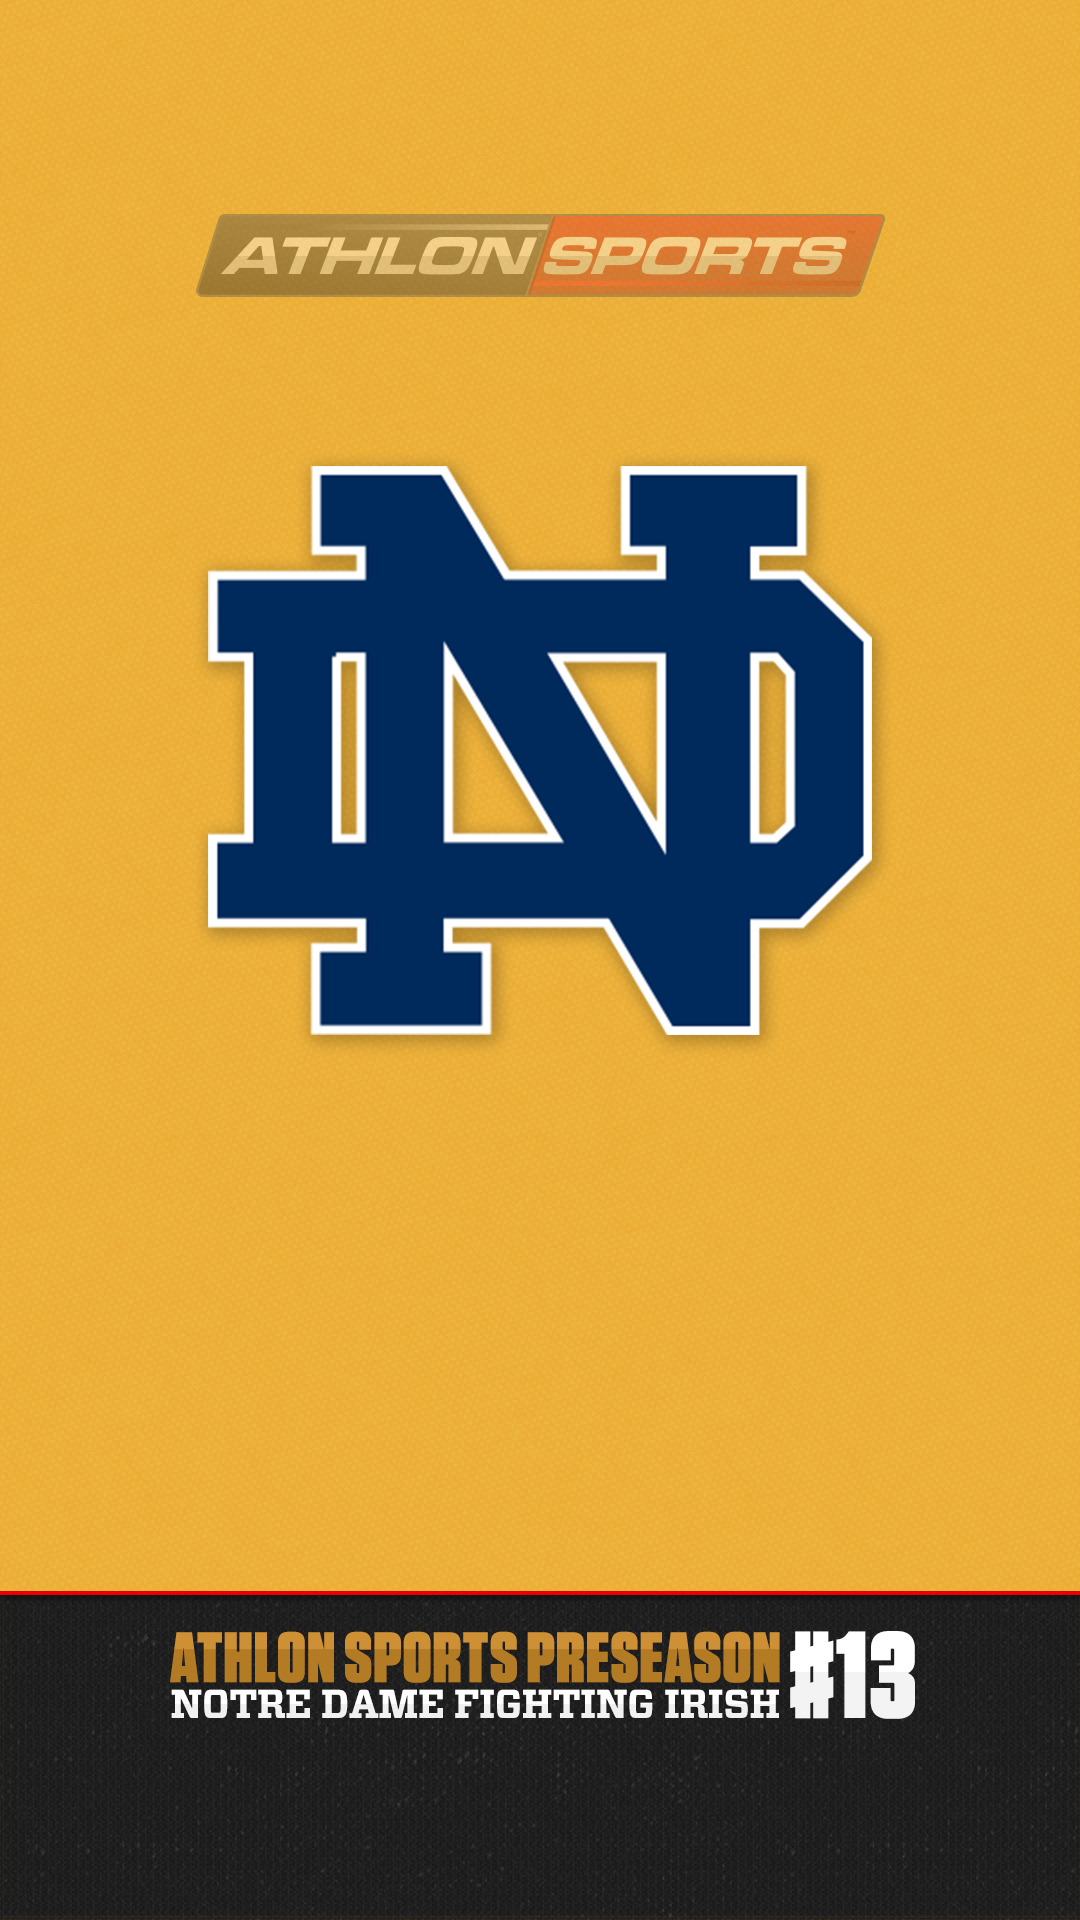 2014 College Football Rankings 13 Notre Dame AthlonSportscom 1080x1920